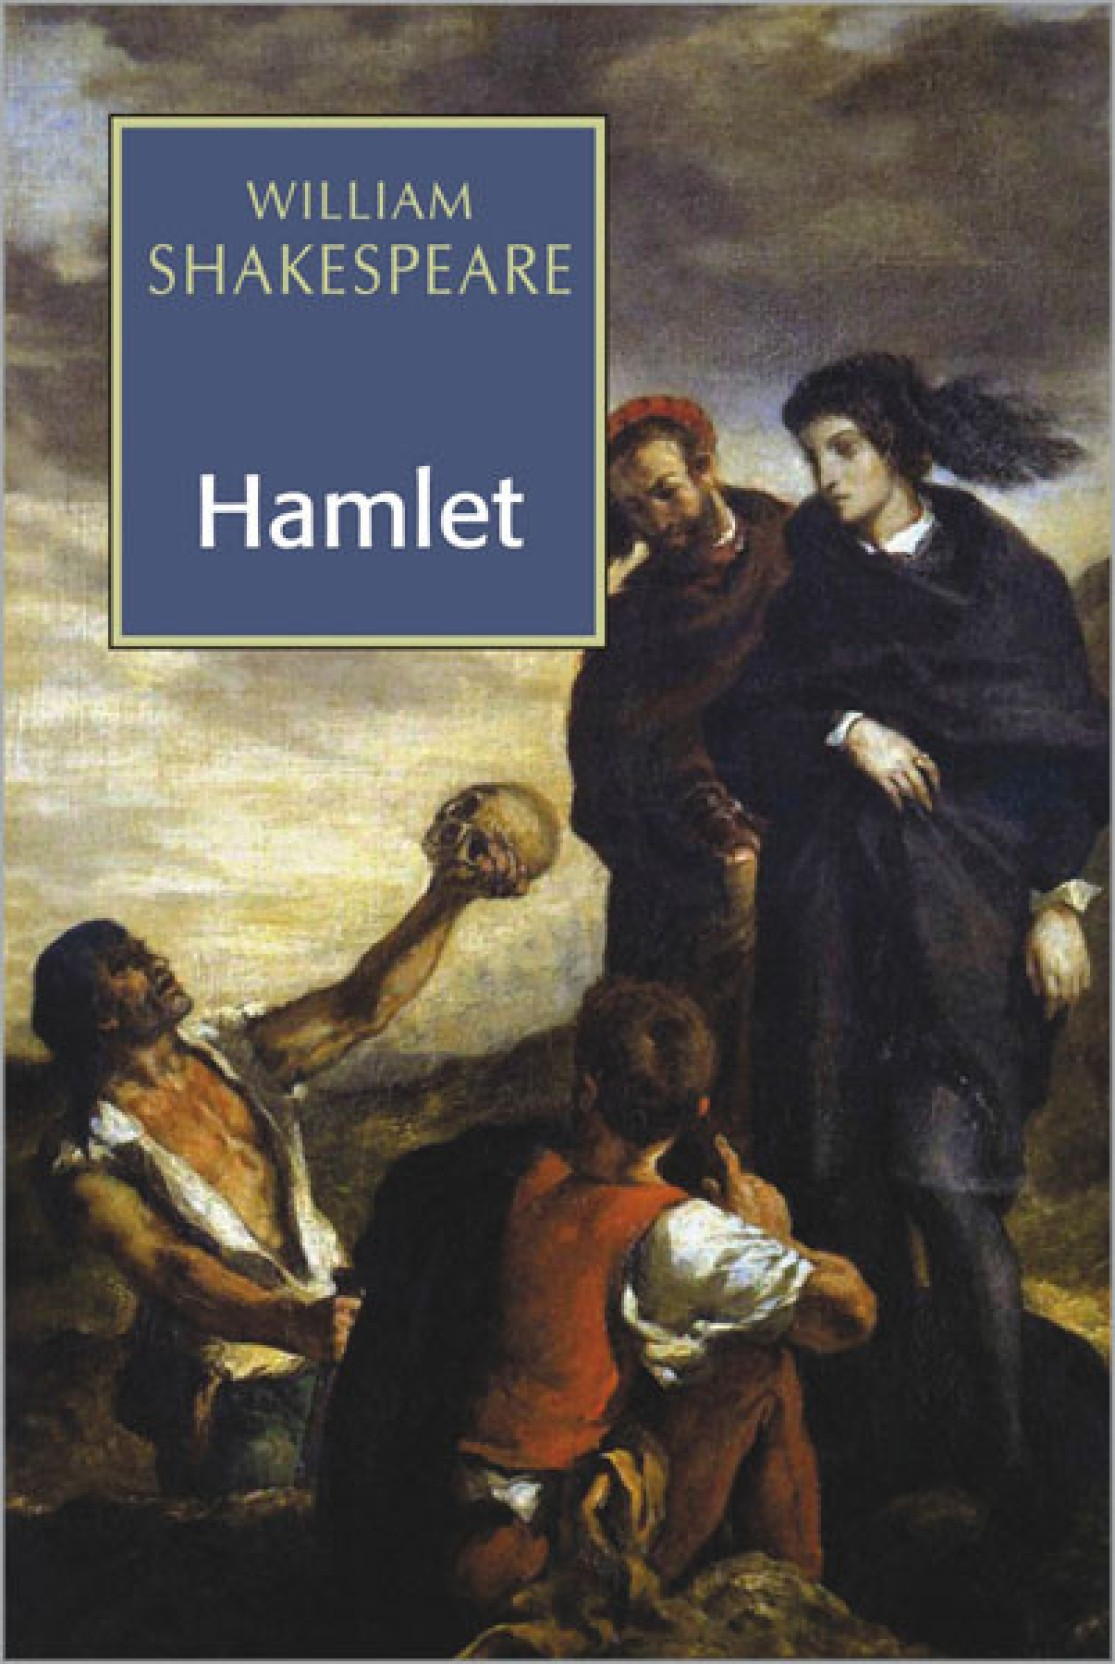 an analysis of the soliloquies of hamlet in a play by william shakespeare Hamlet, the main character of william shakespeare's play hamlet, is one of the most complex characters ever created his intricacy can be seen in the amount of soliloquies he speaks throughout the play.